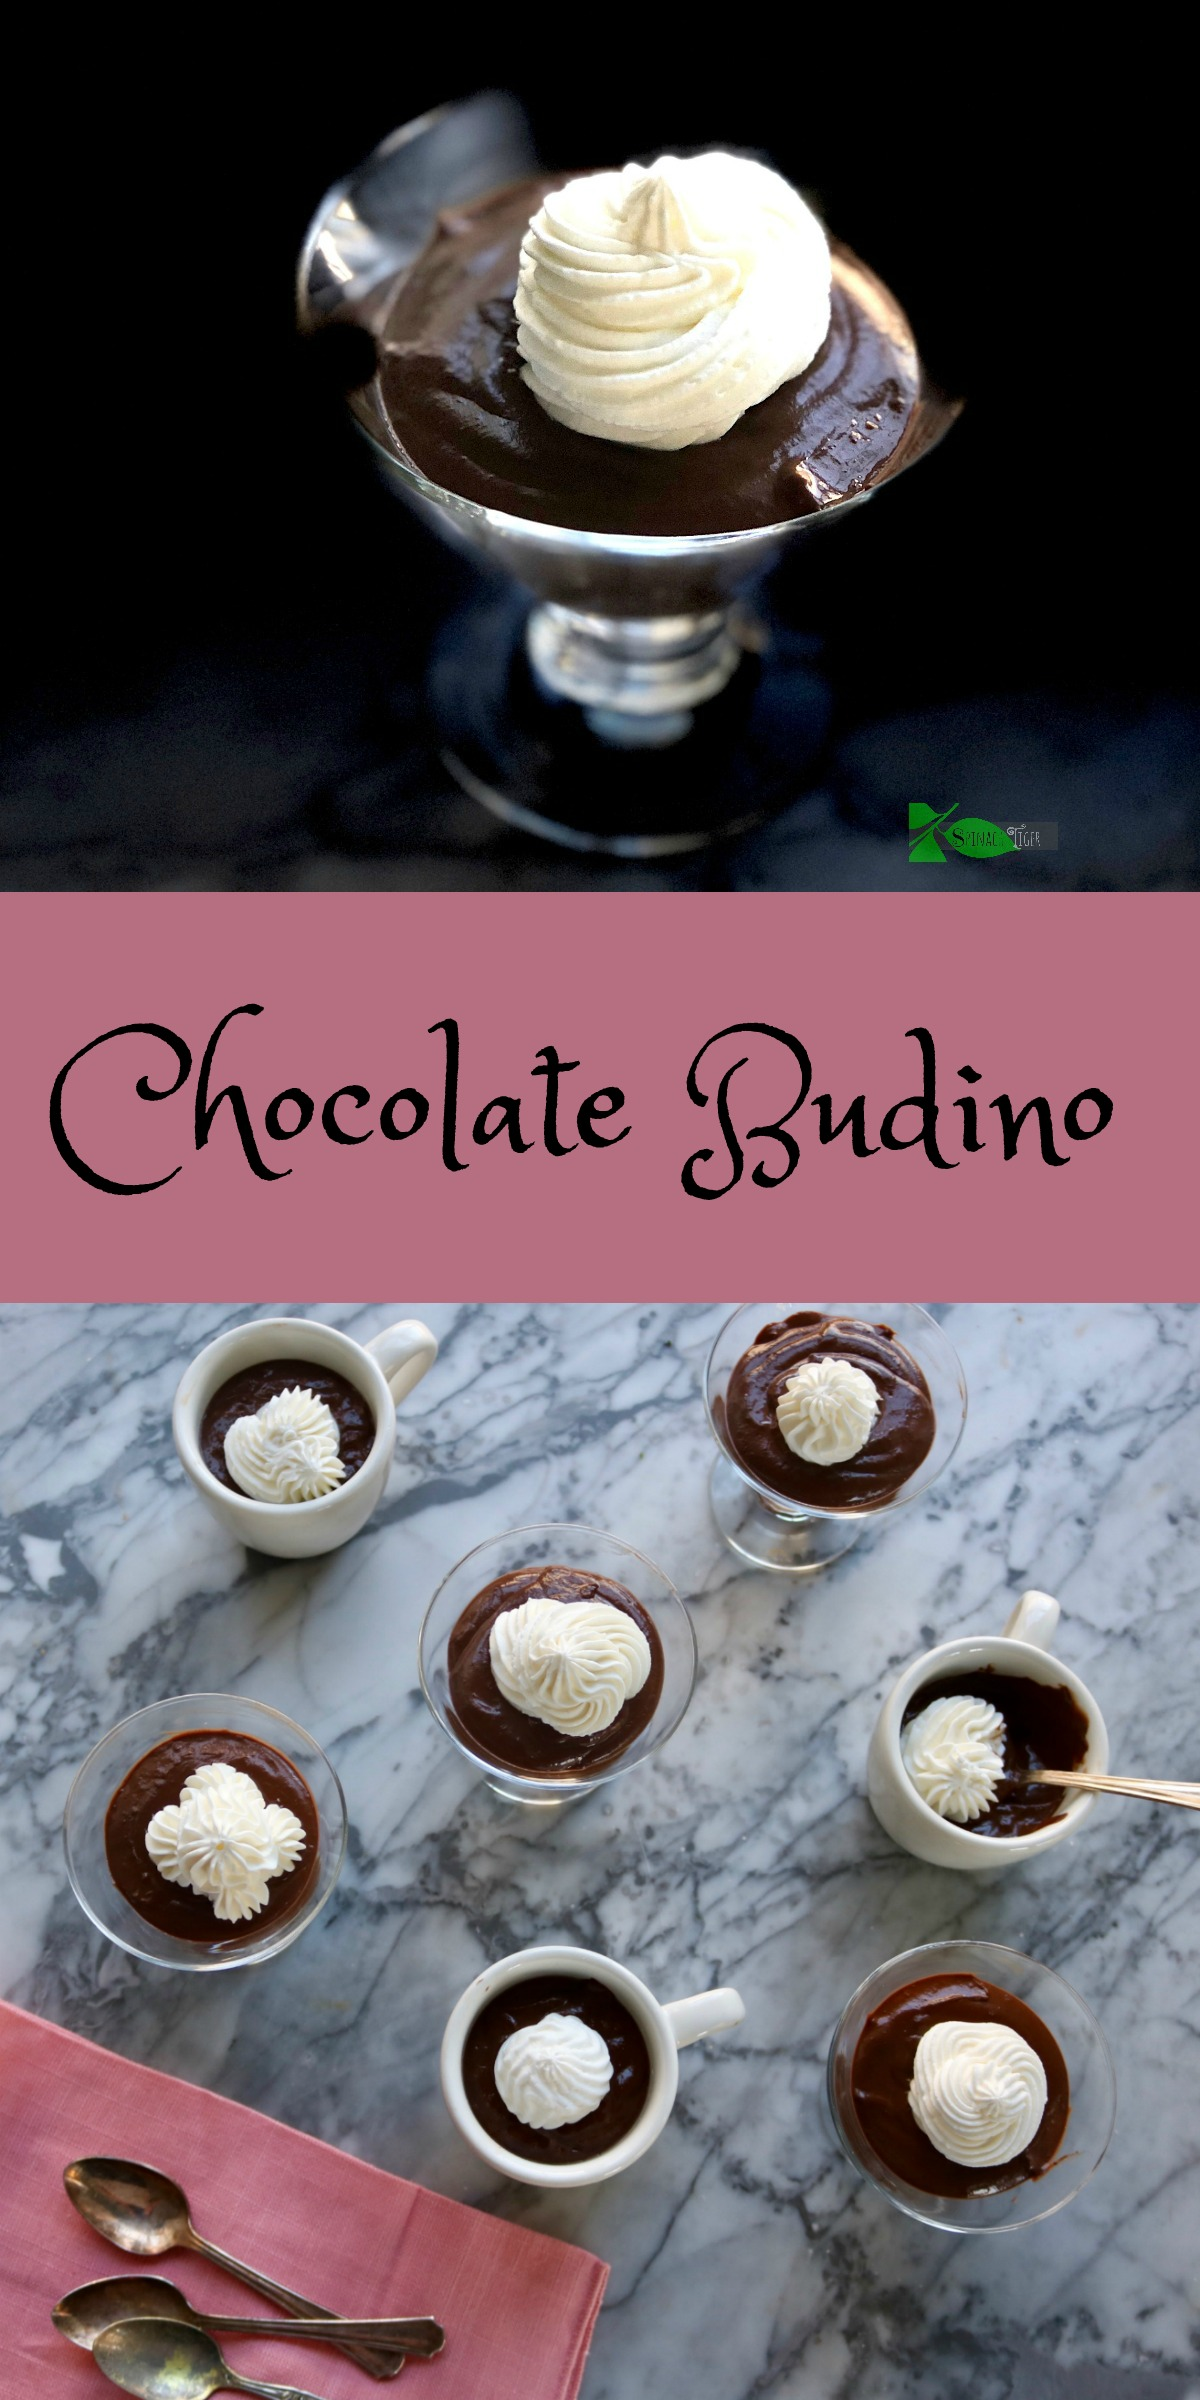 Sugar Free Chocolate Budino Recipe from Spinach Tiger